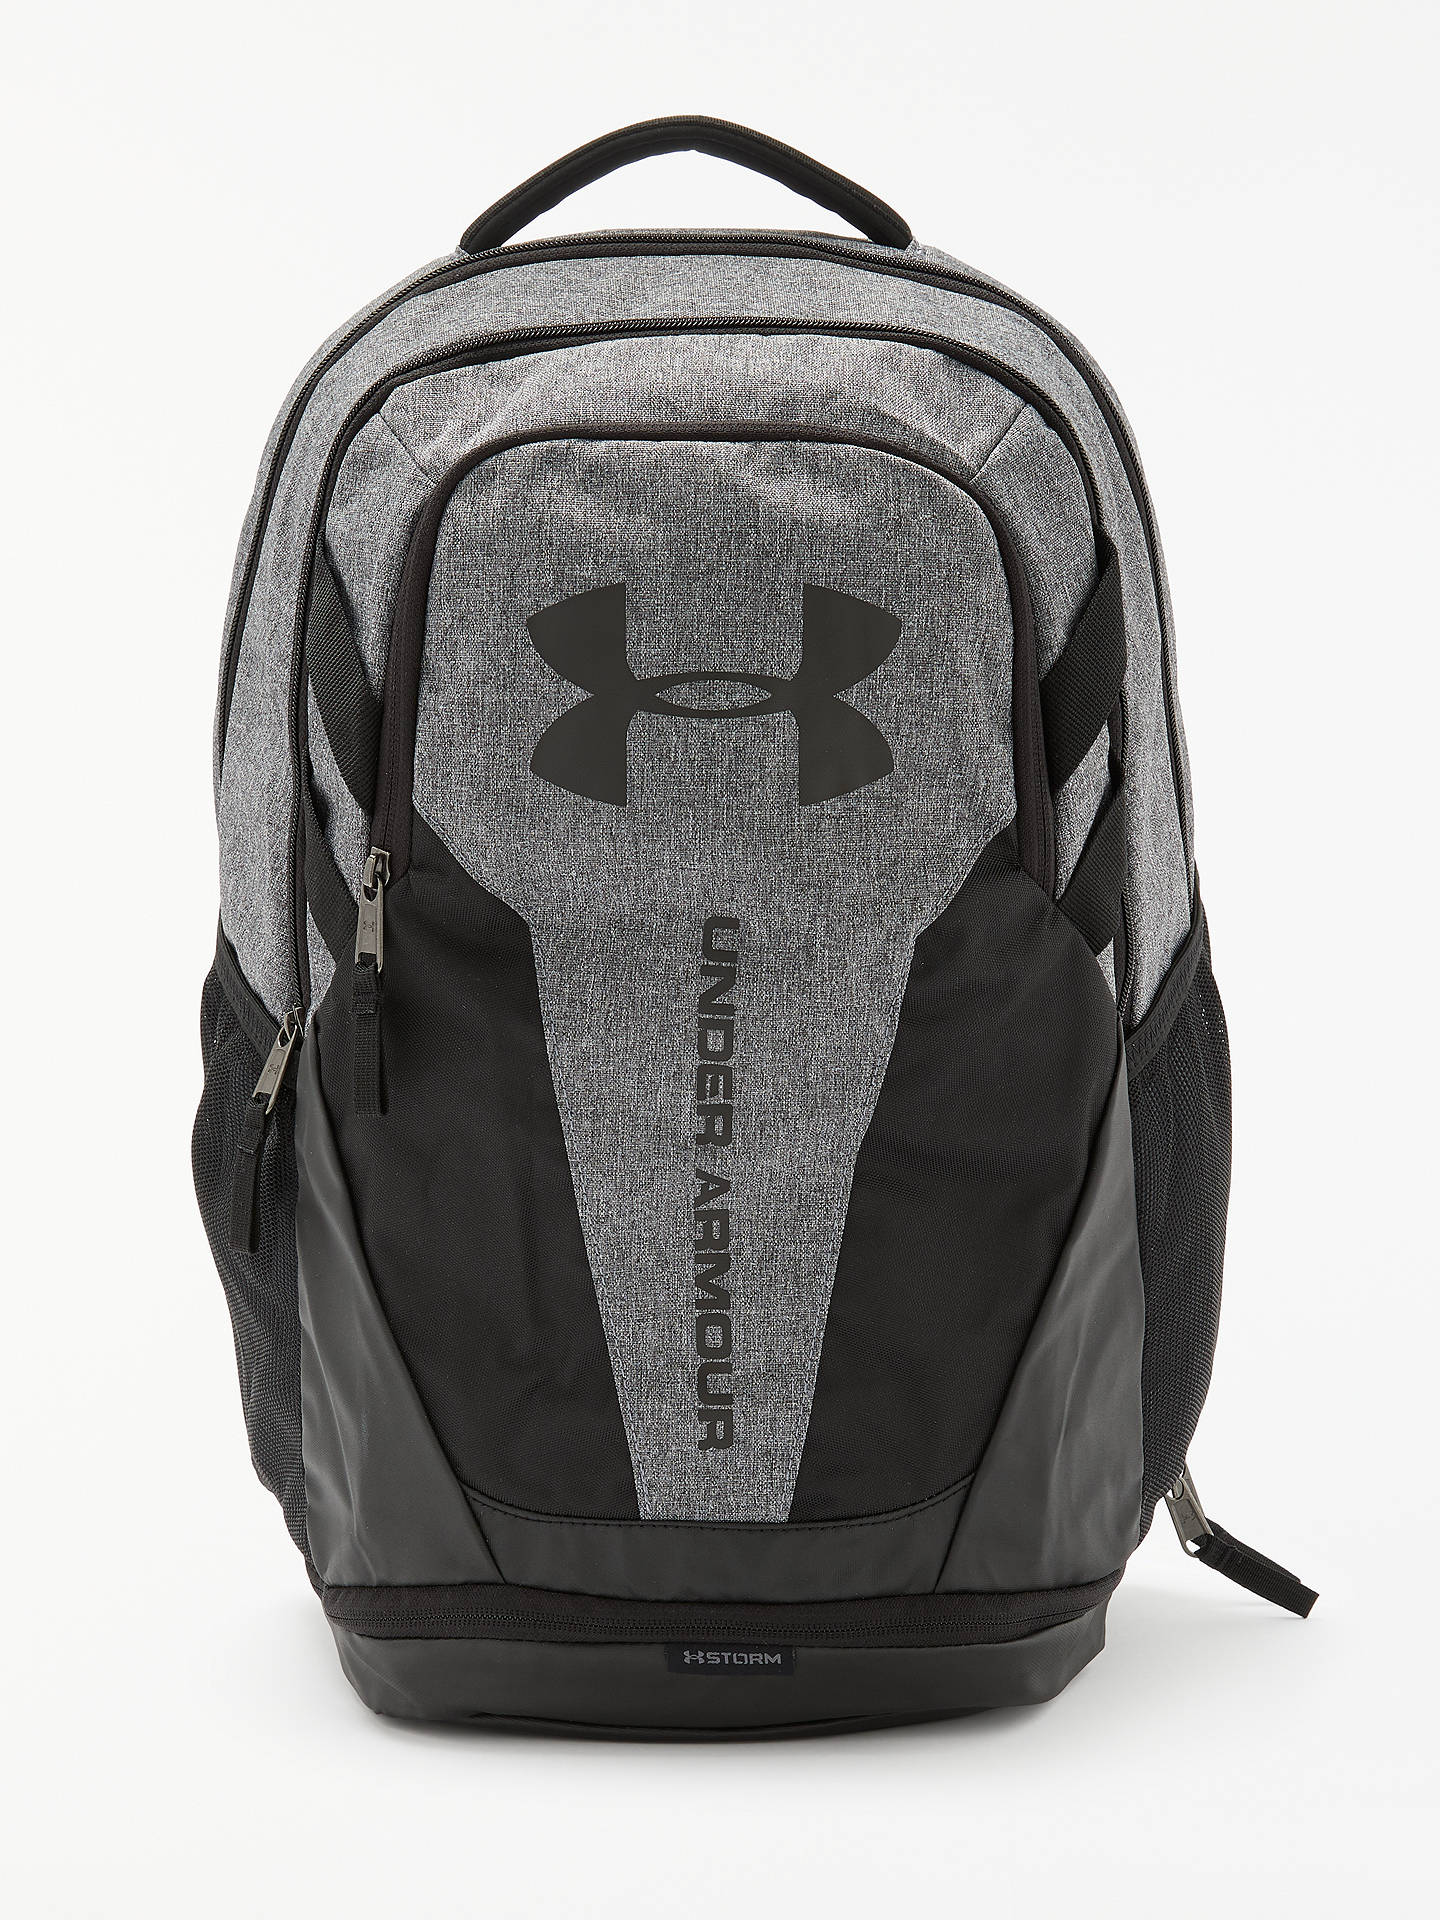 28a0868d34 Buy Under Armour Hustle 3.0 Backpack